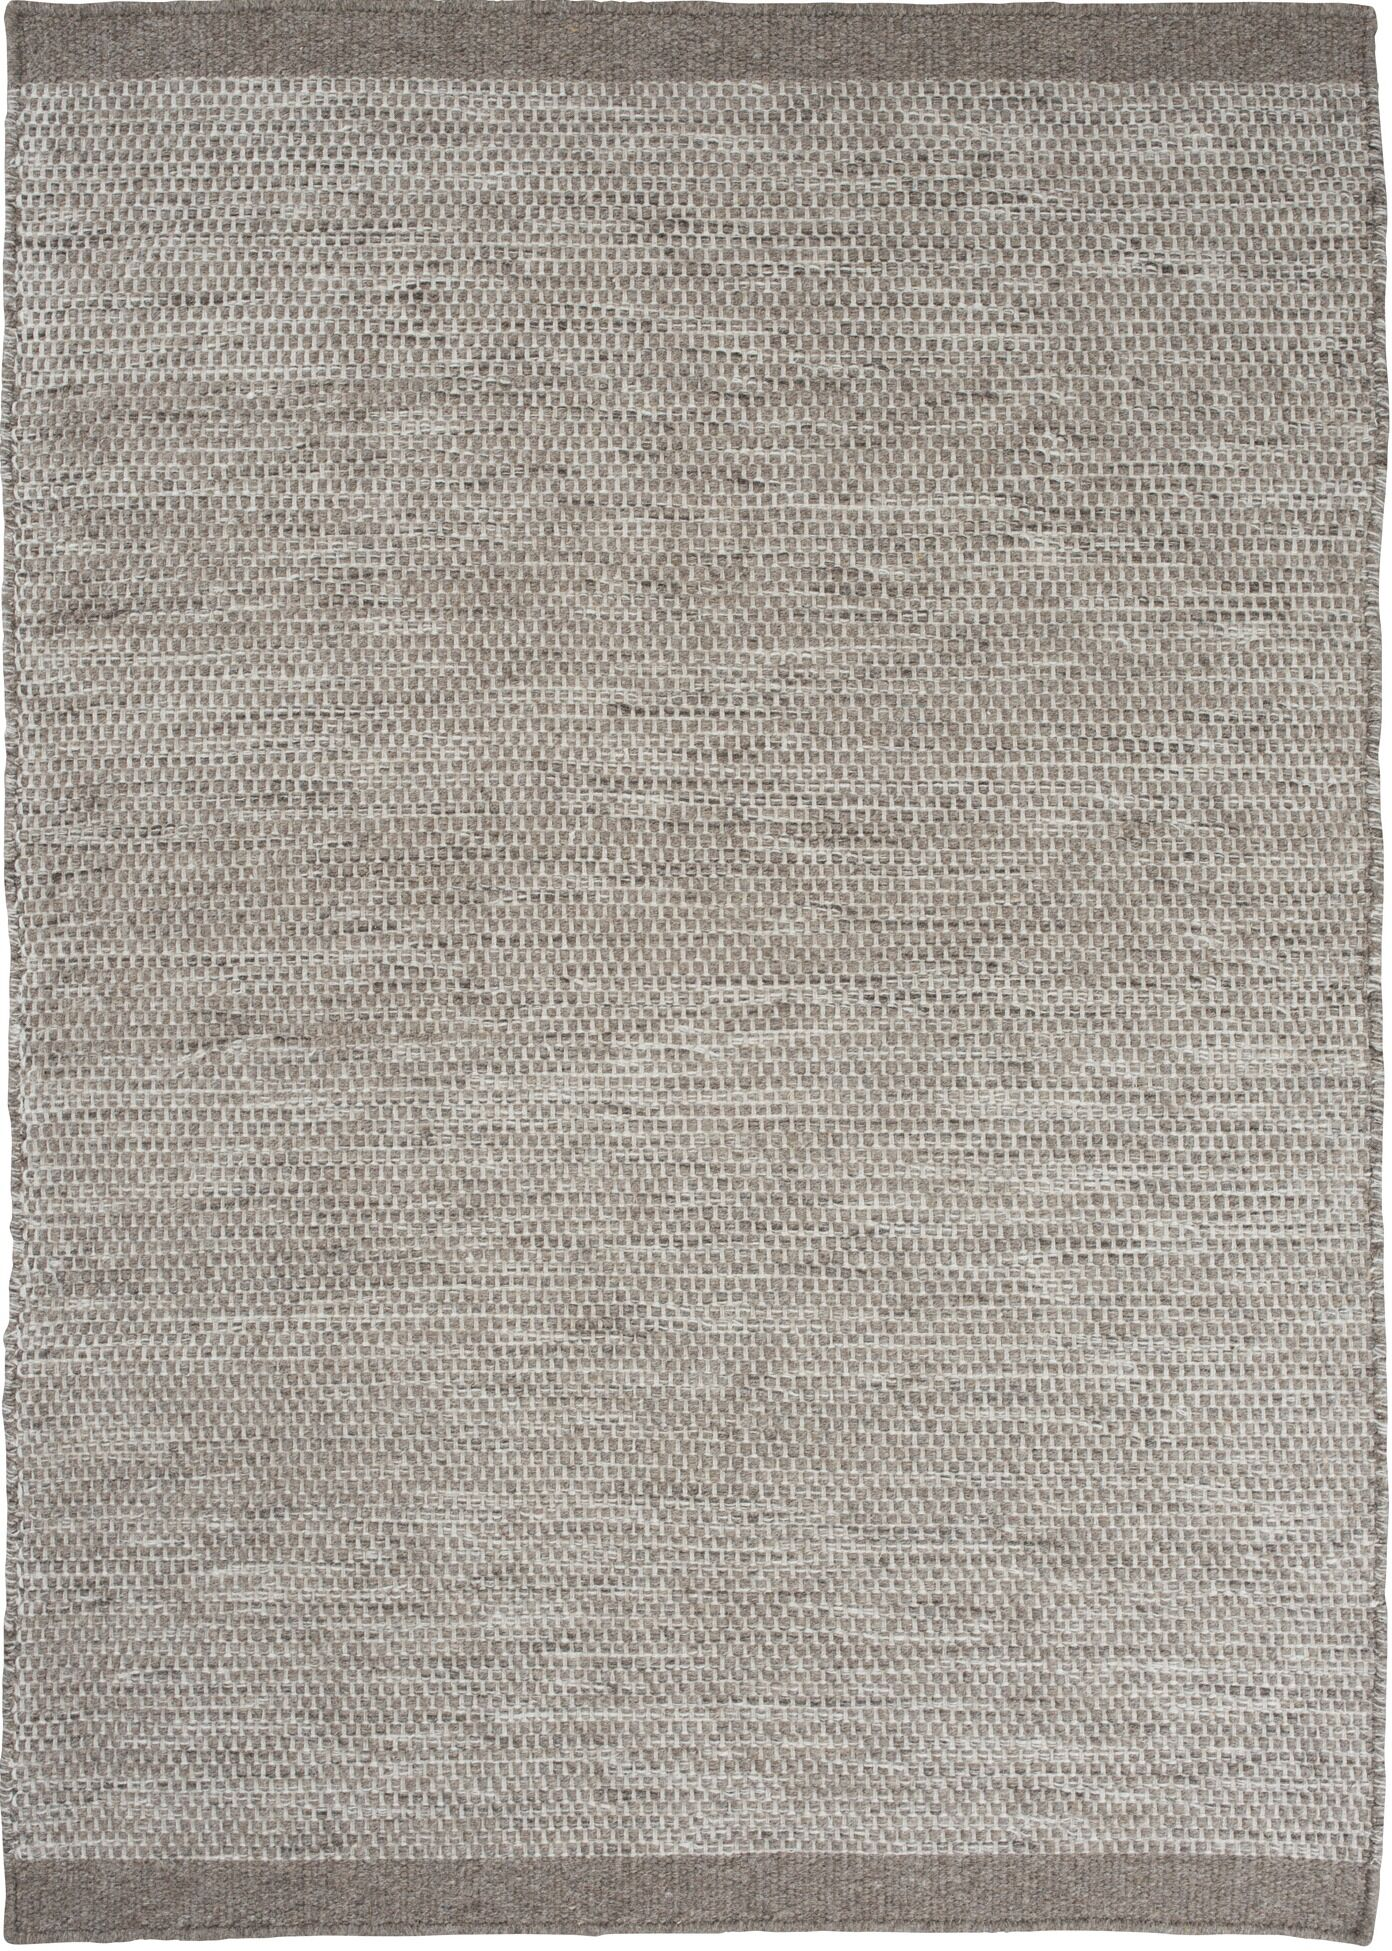 Mariya Hand Woven Wool Light Gray Area Rug Rug Size: 6'6